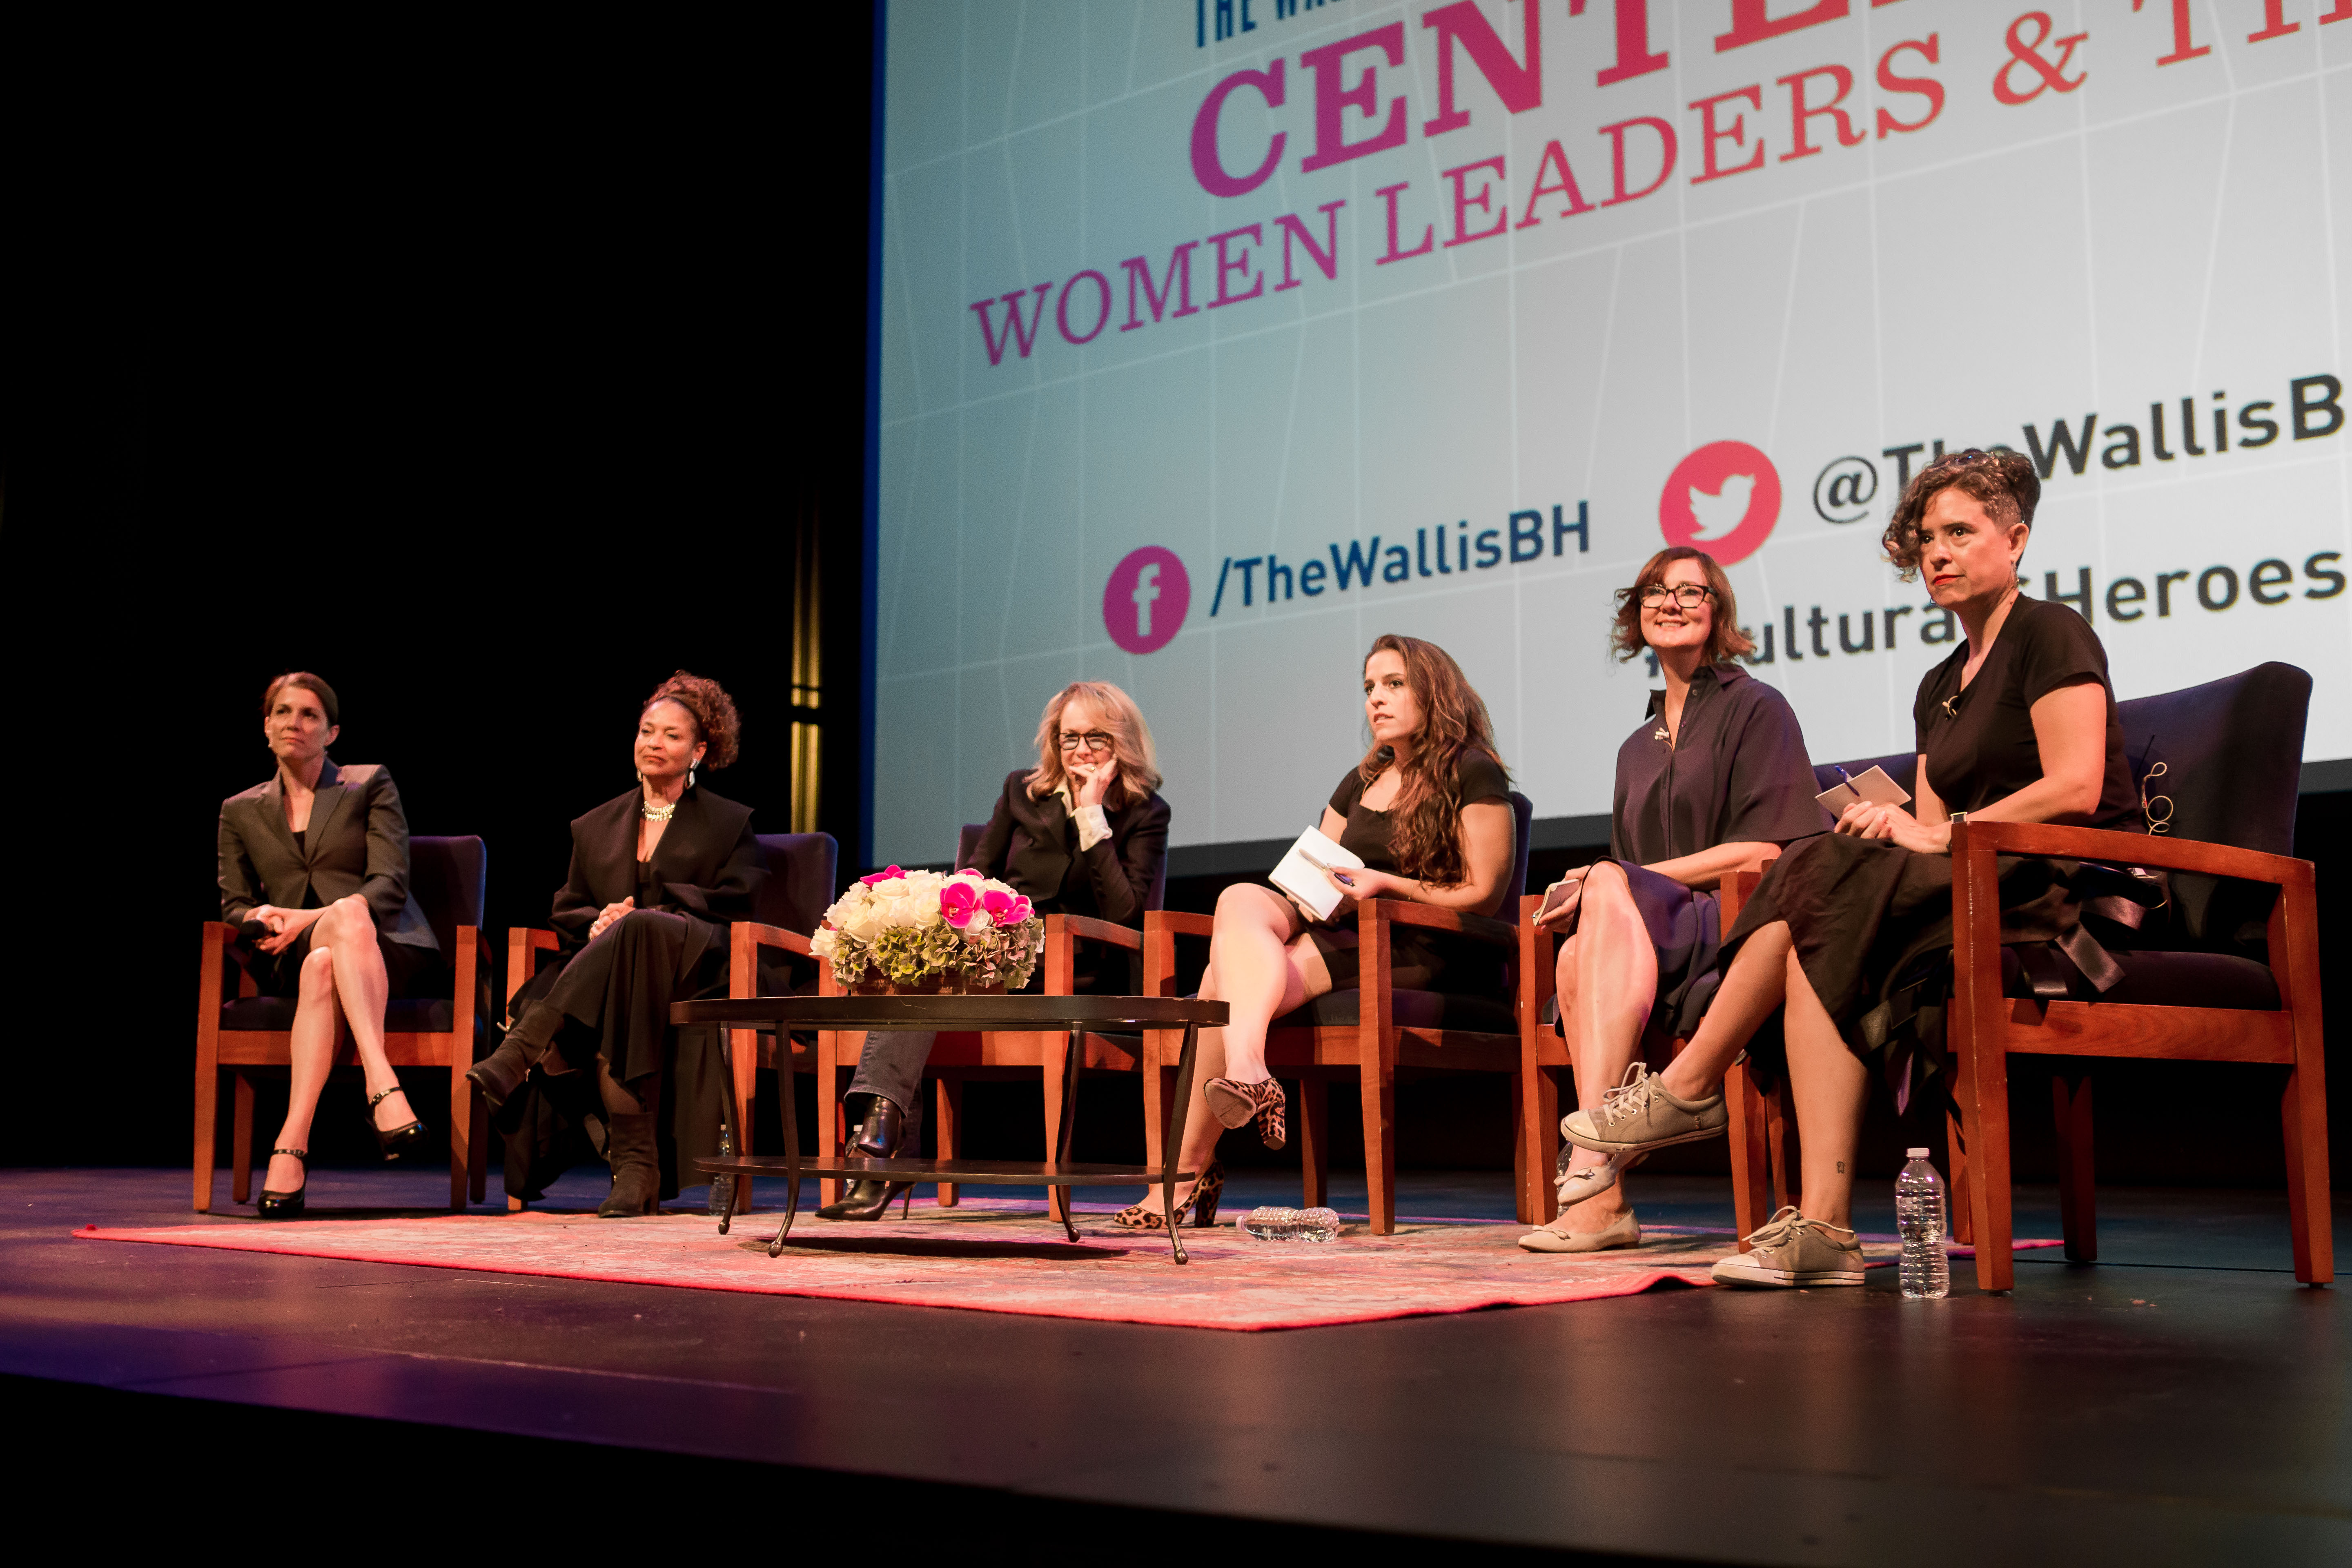 Center Stage: Women Leaders & The Arts. 2018.